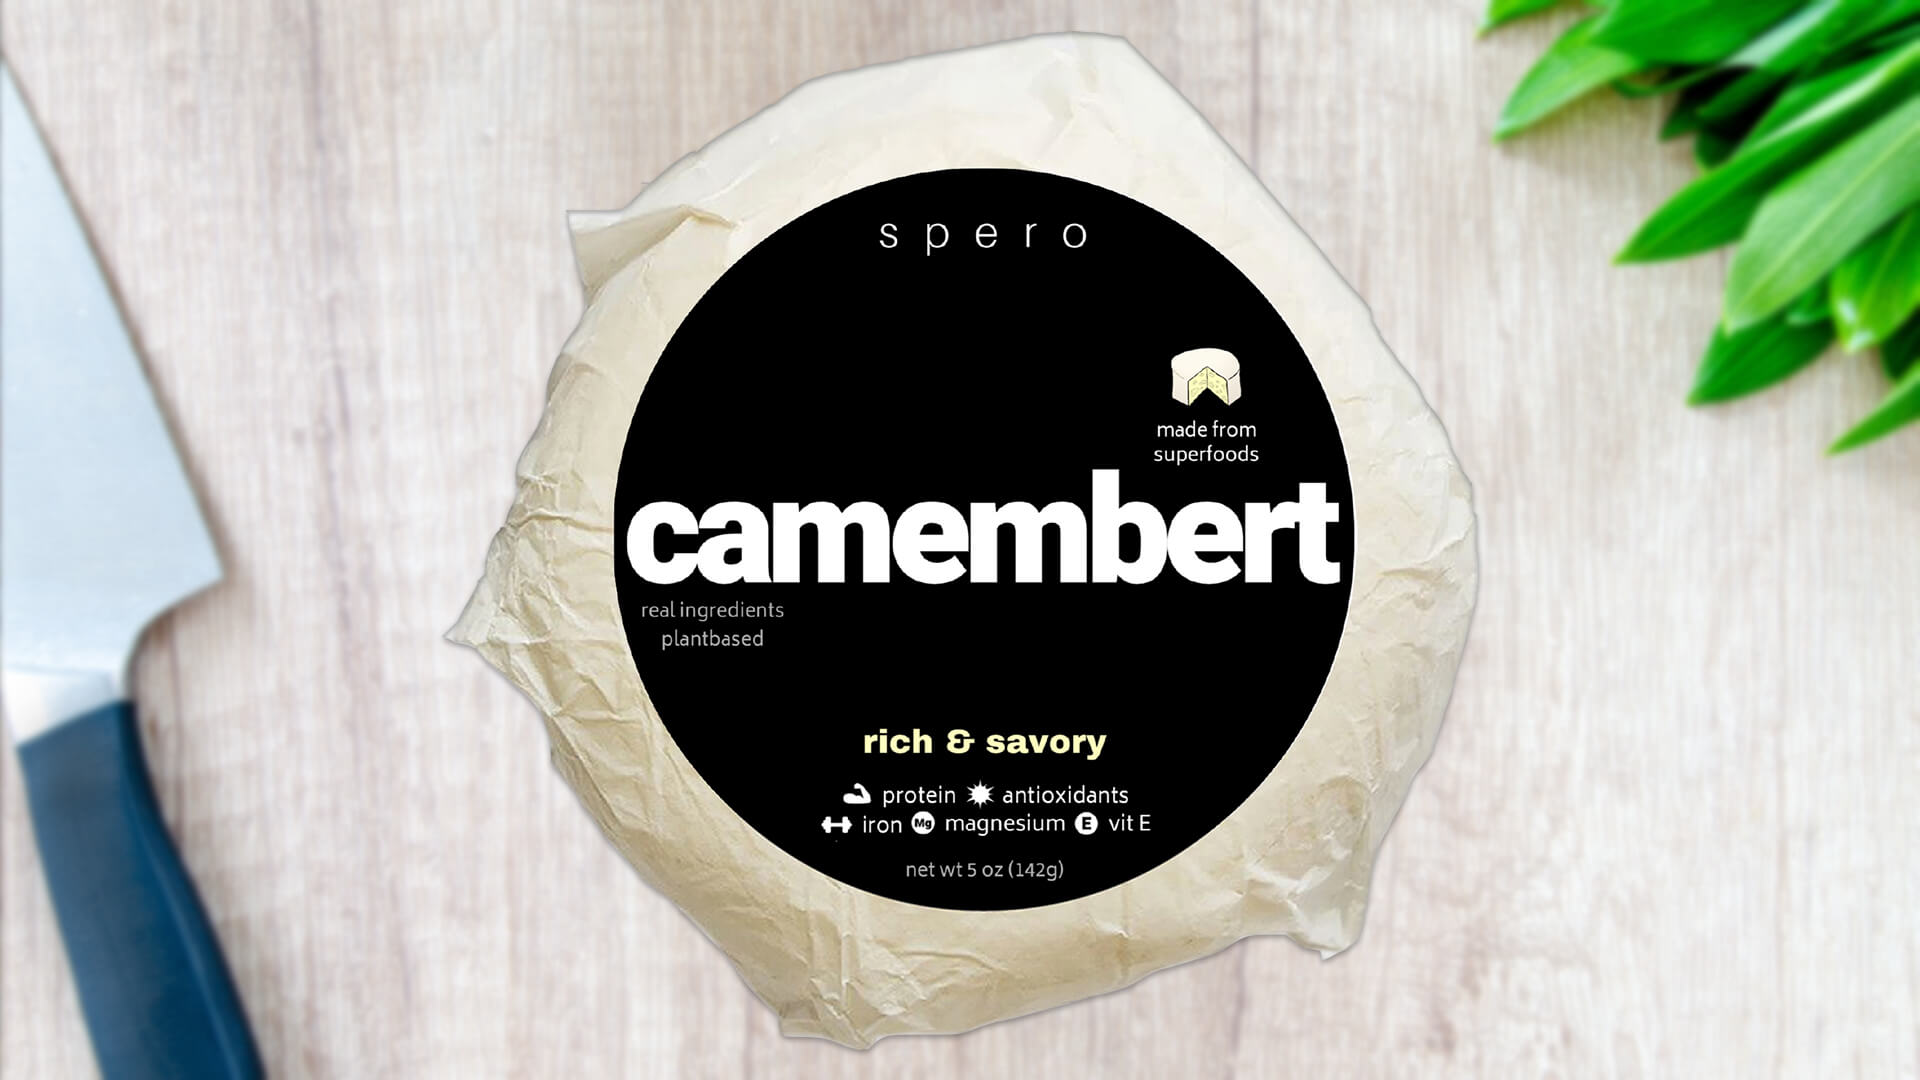 This Vegan Camembert Cheese Is Made From Sunflowers